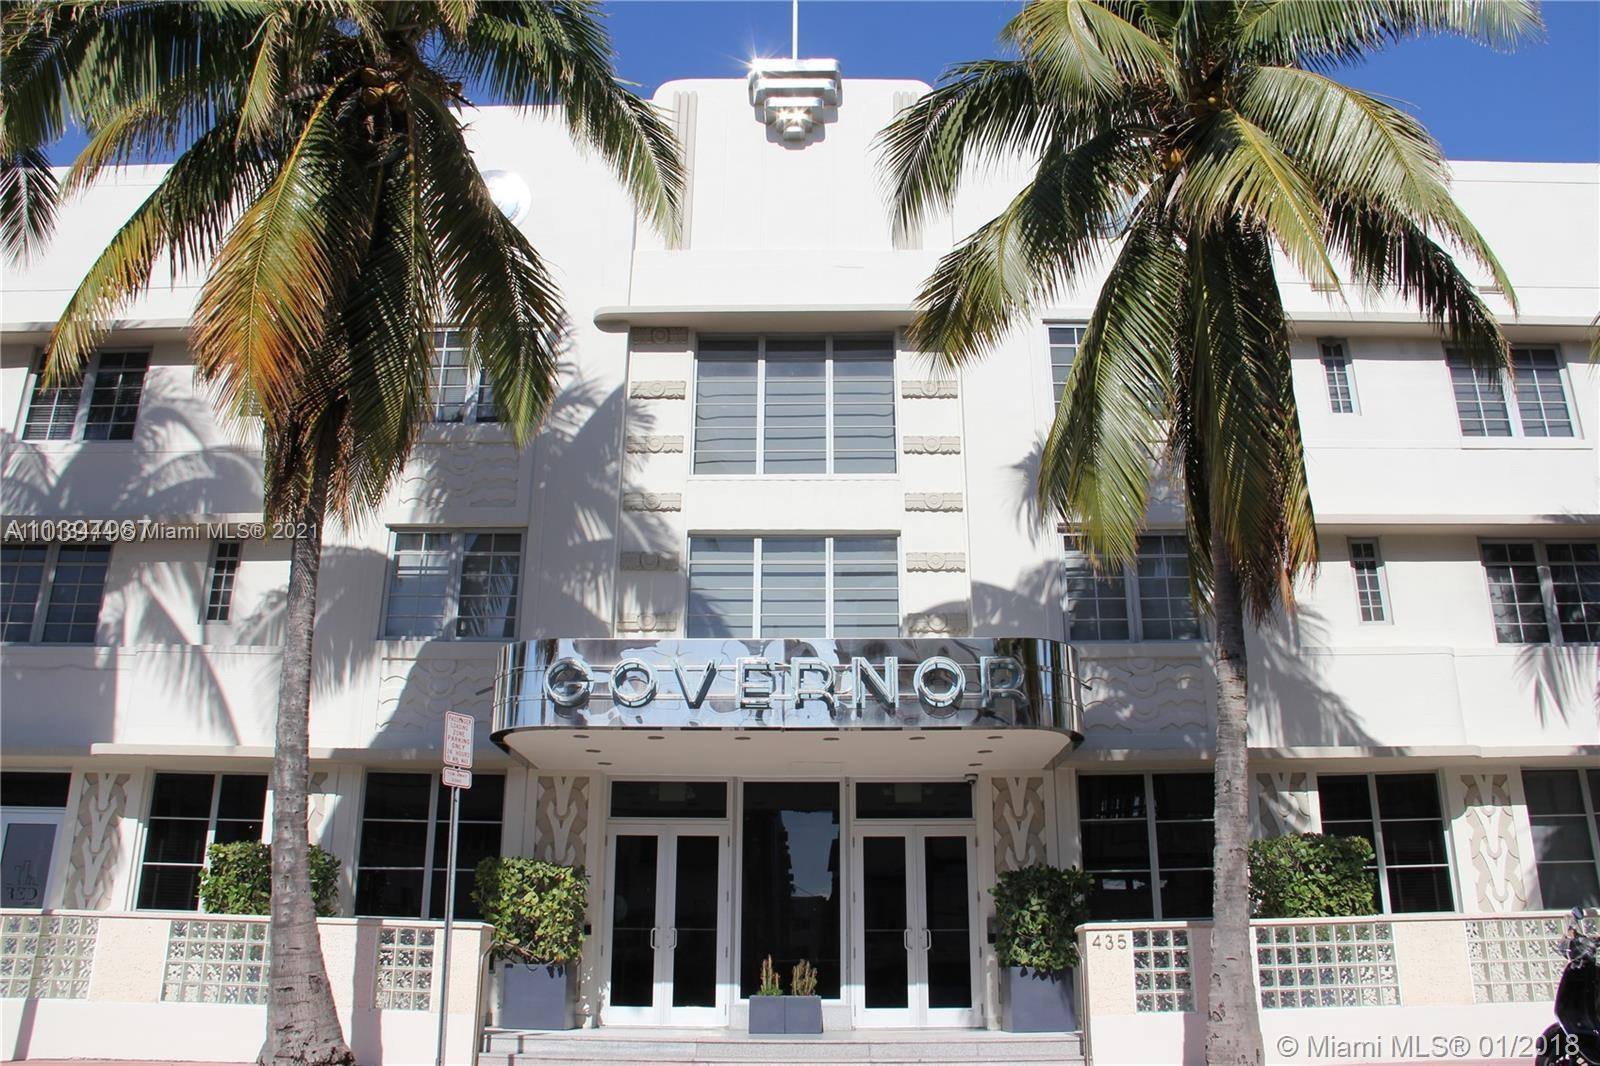 Live in the heart of the South Beach in this sleek contemporary 1/1 located in the renowned Artecity